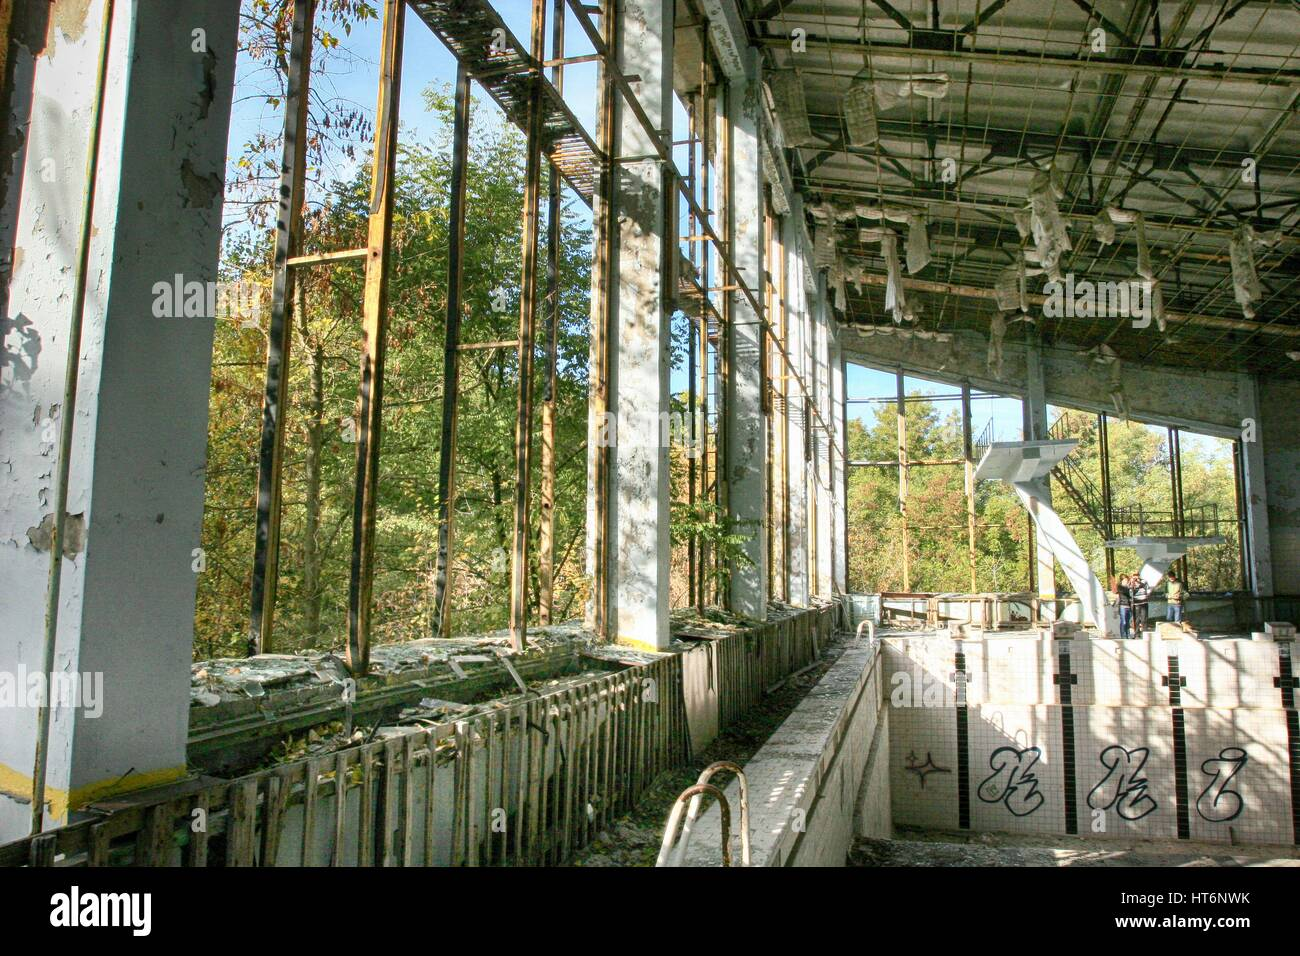 Chernobyl  Pripyat – abandoned building of swimming pool after Chernobyl disaster - Stock Image